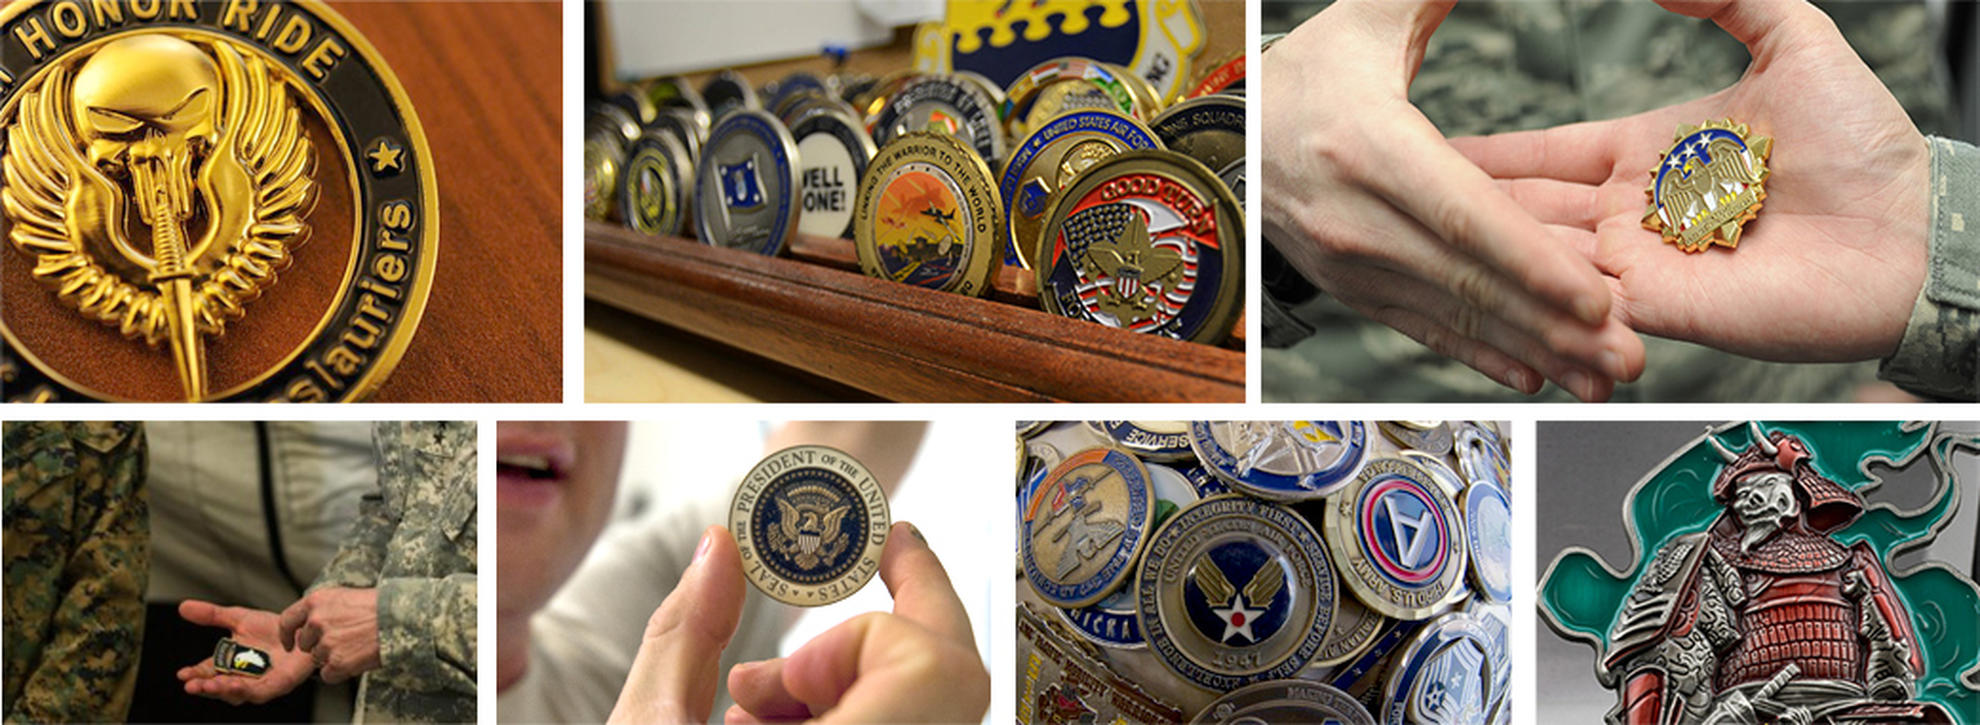 signature-coins-custom-challenge-coins-for-all-occasions